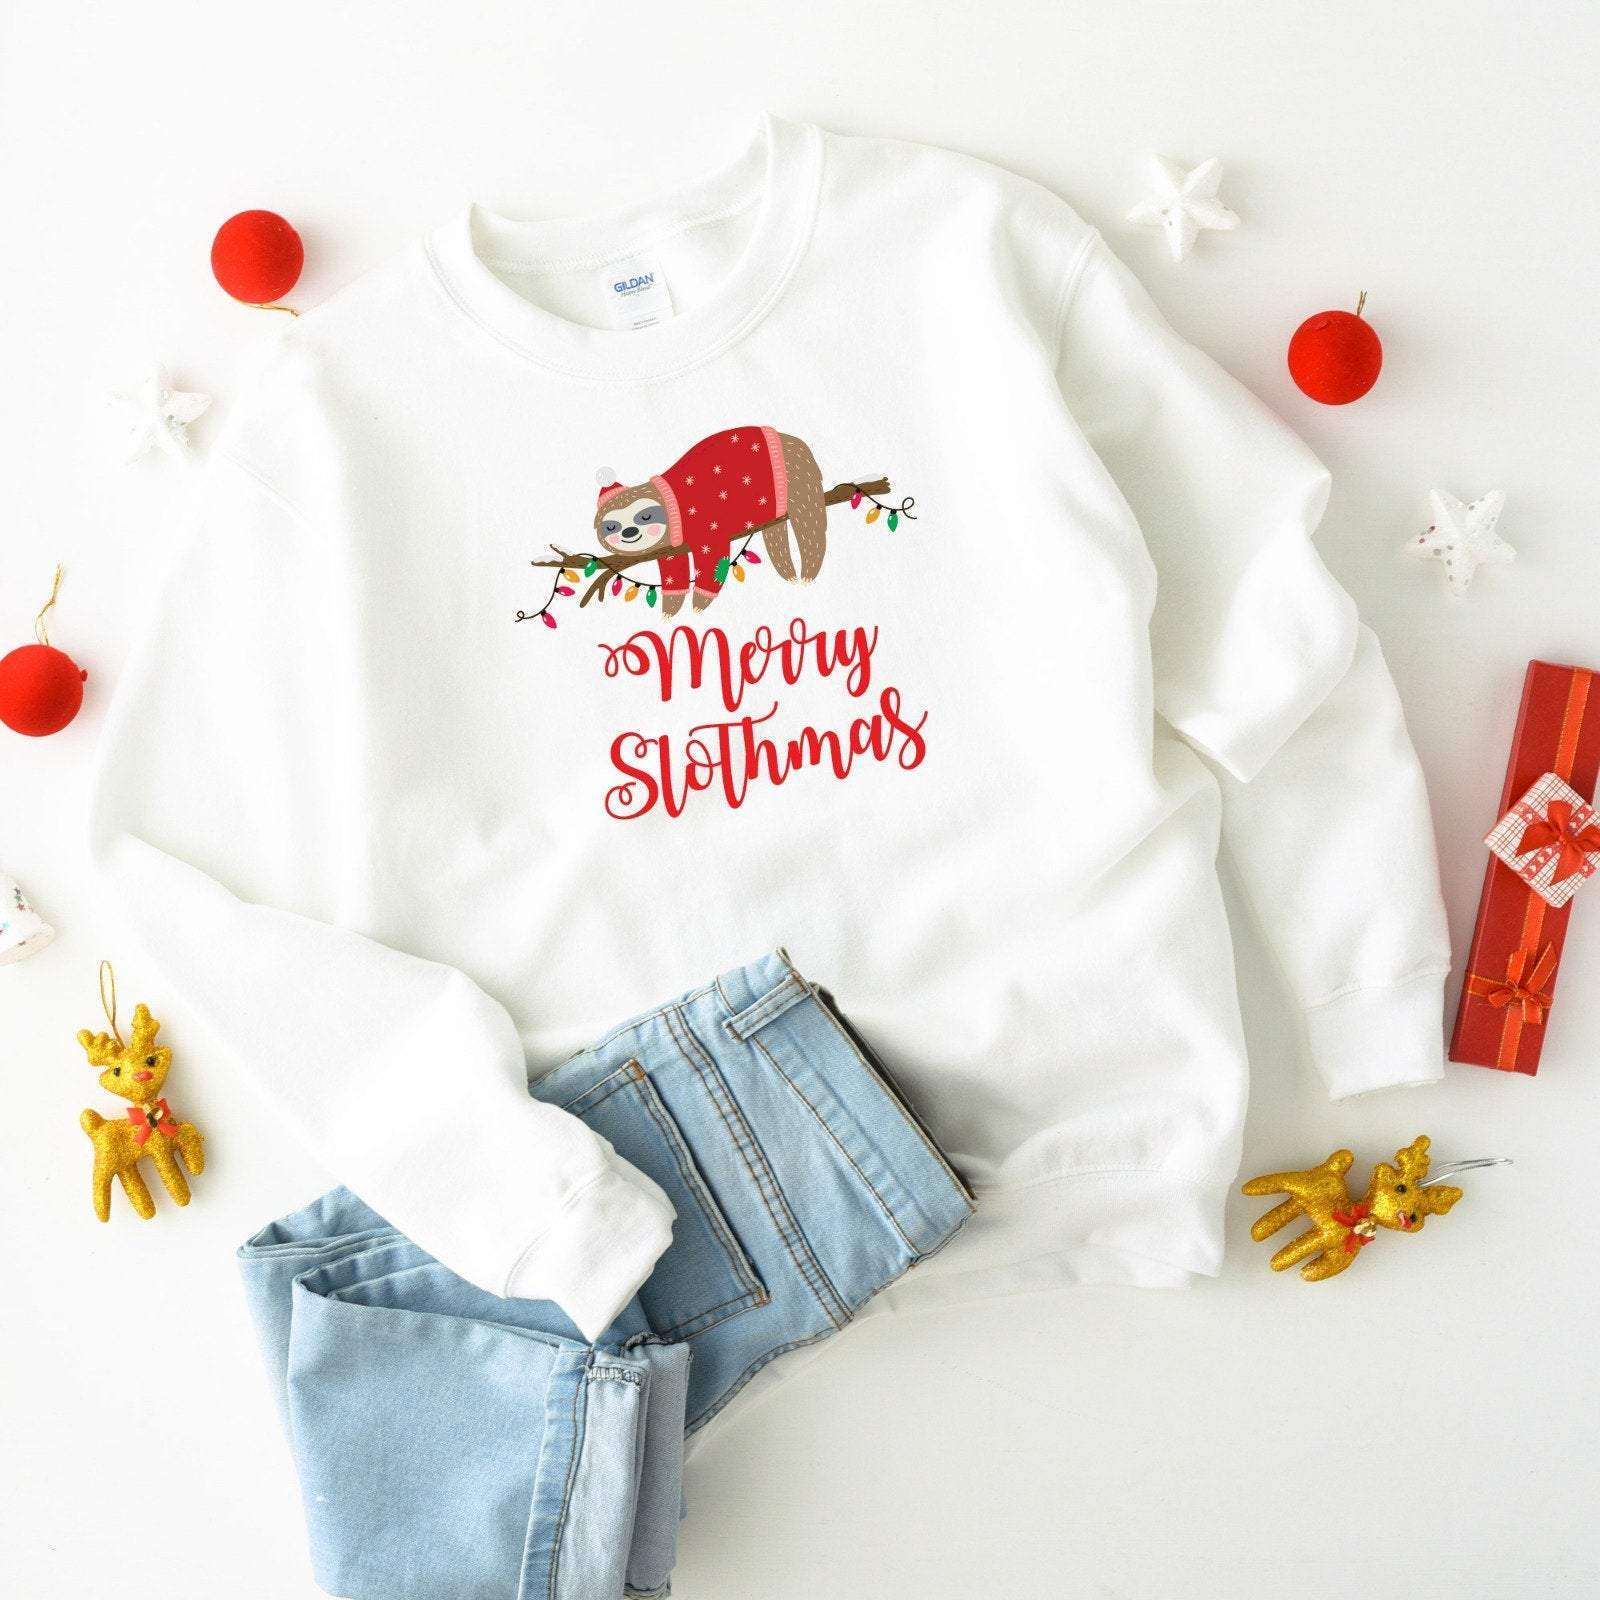 Merry Slothmas Christmas Jumper, Suitable for all family members, Matching Sloth , Xmas Outfit